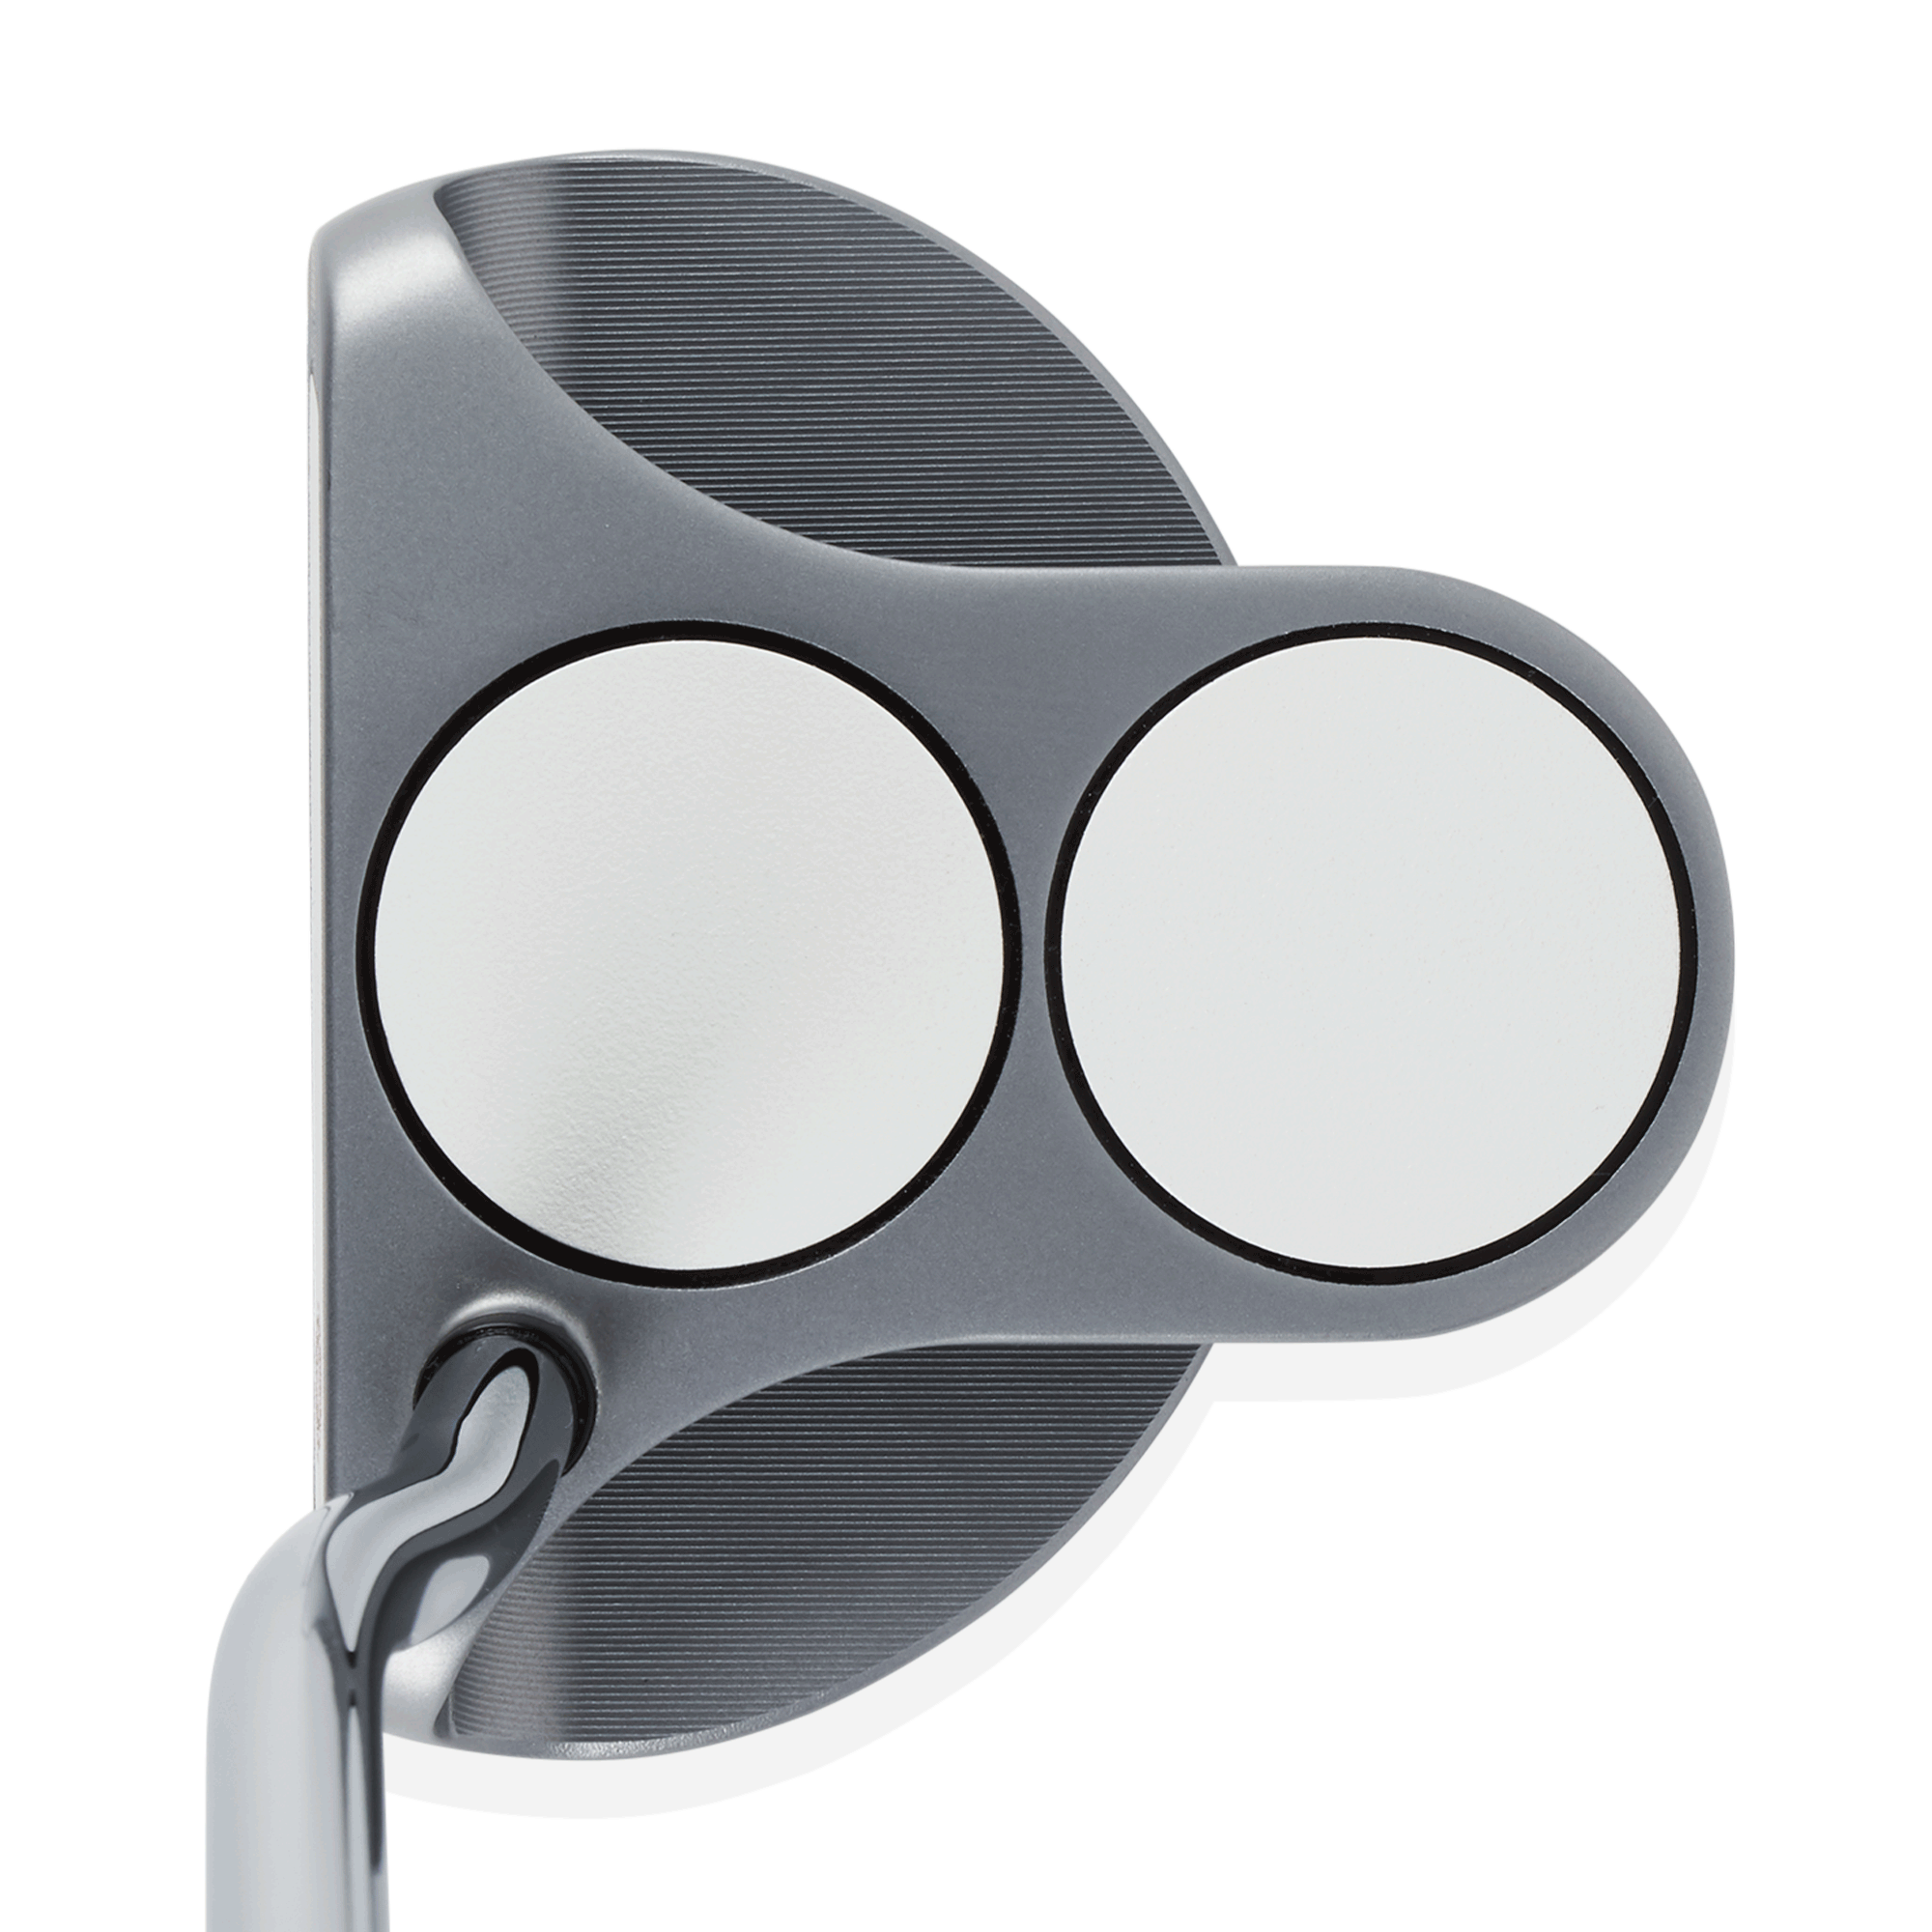 White Hot OG 2-Ball Stroke Lab Putter - Featured